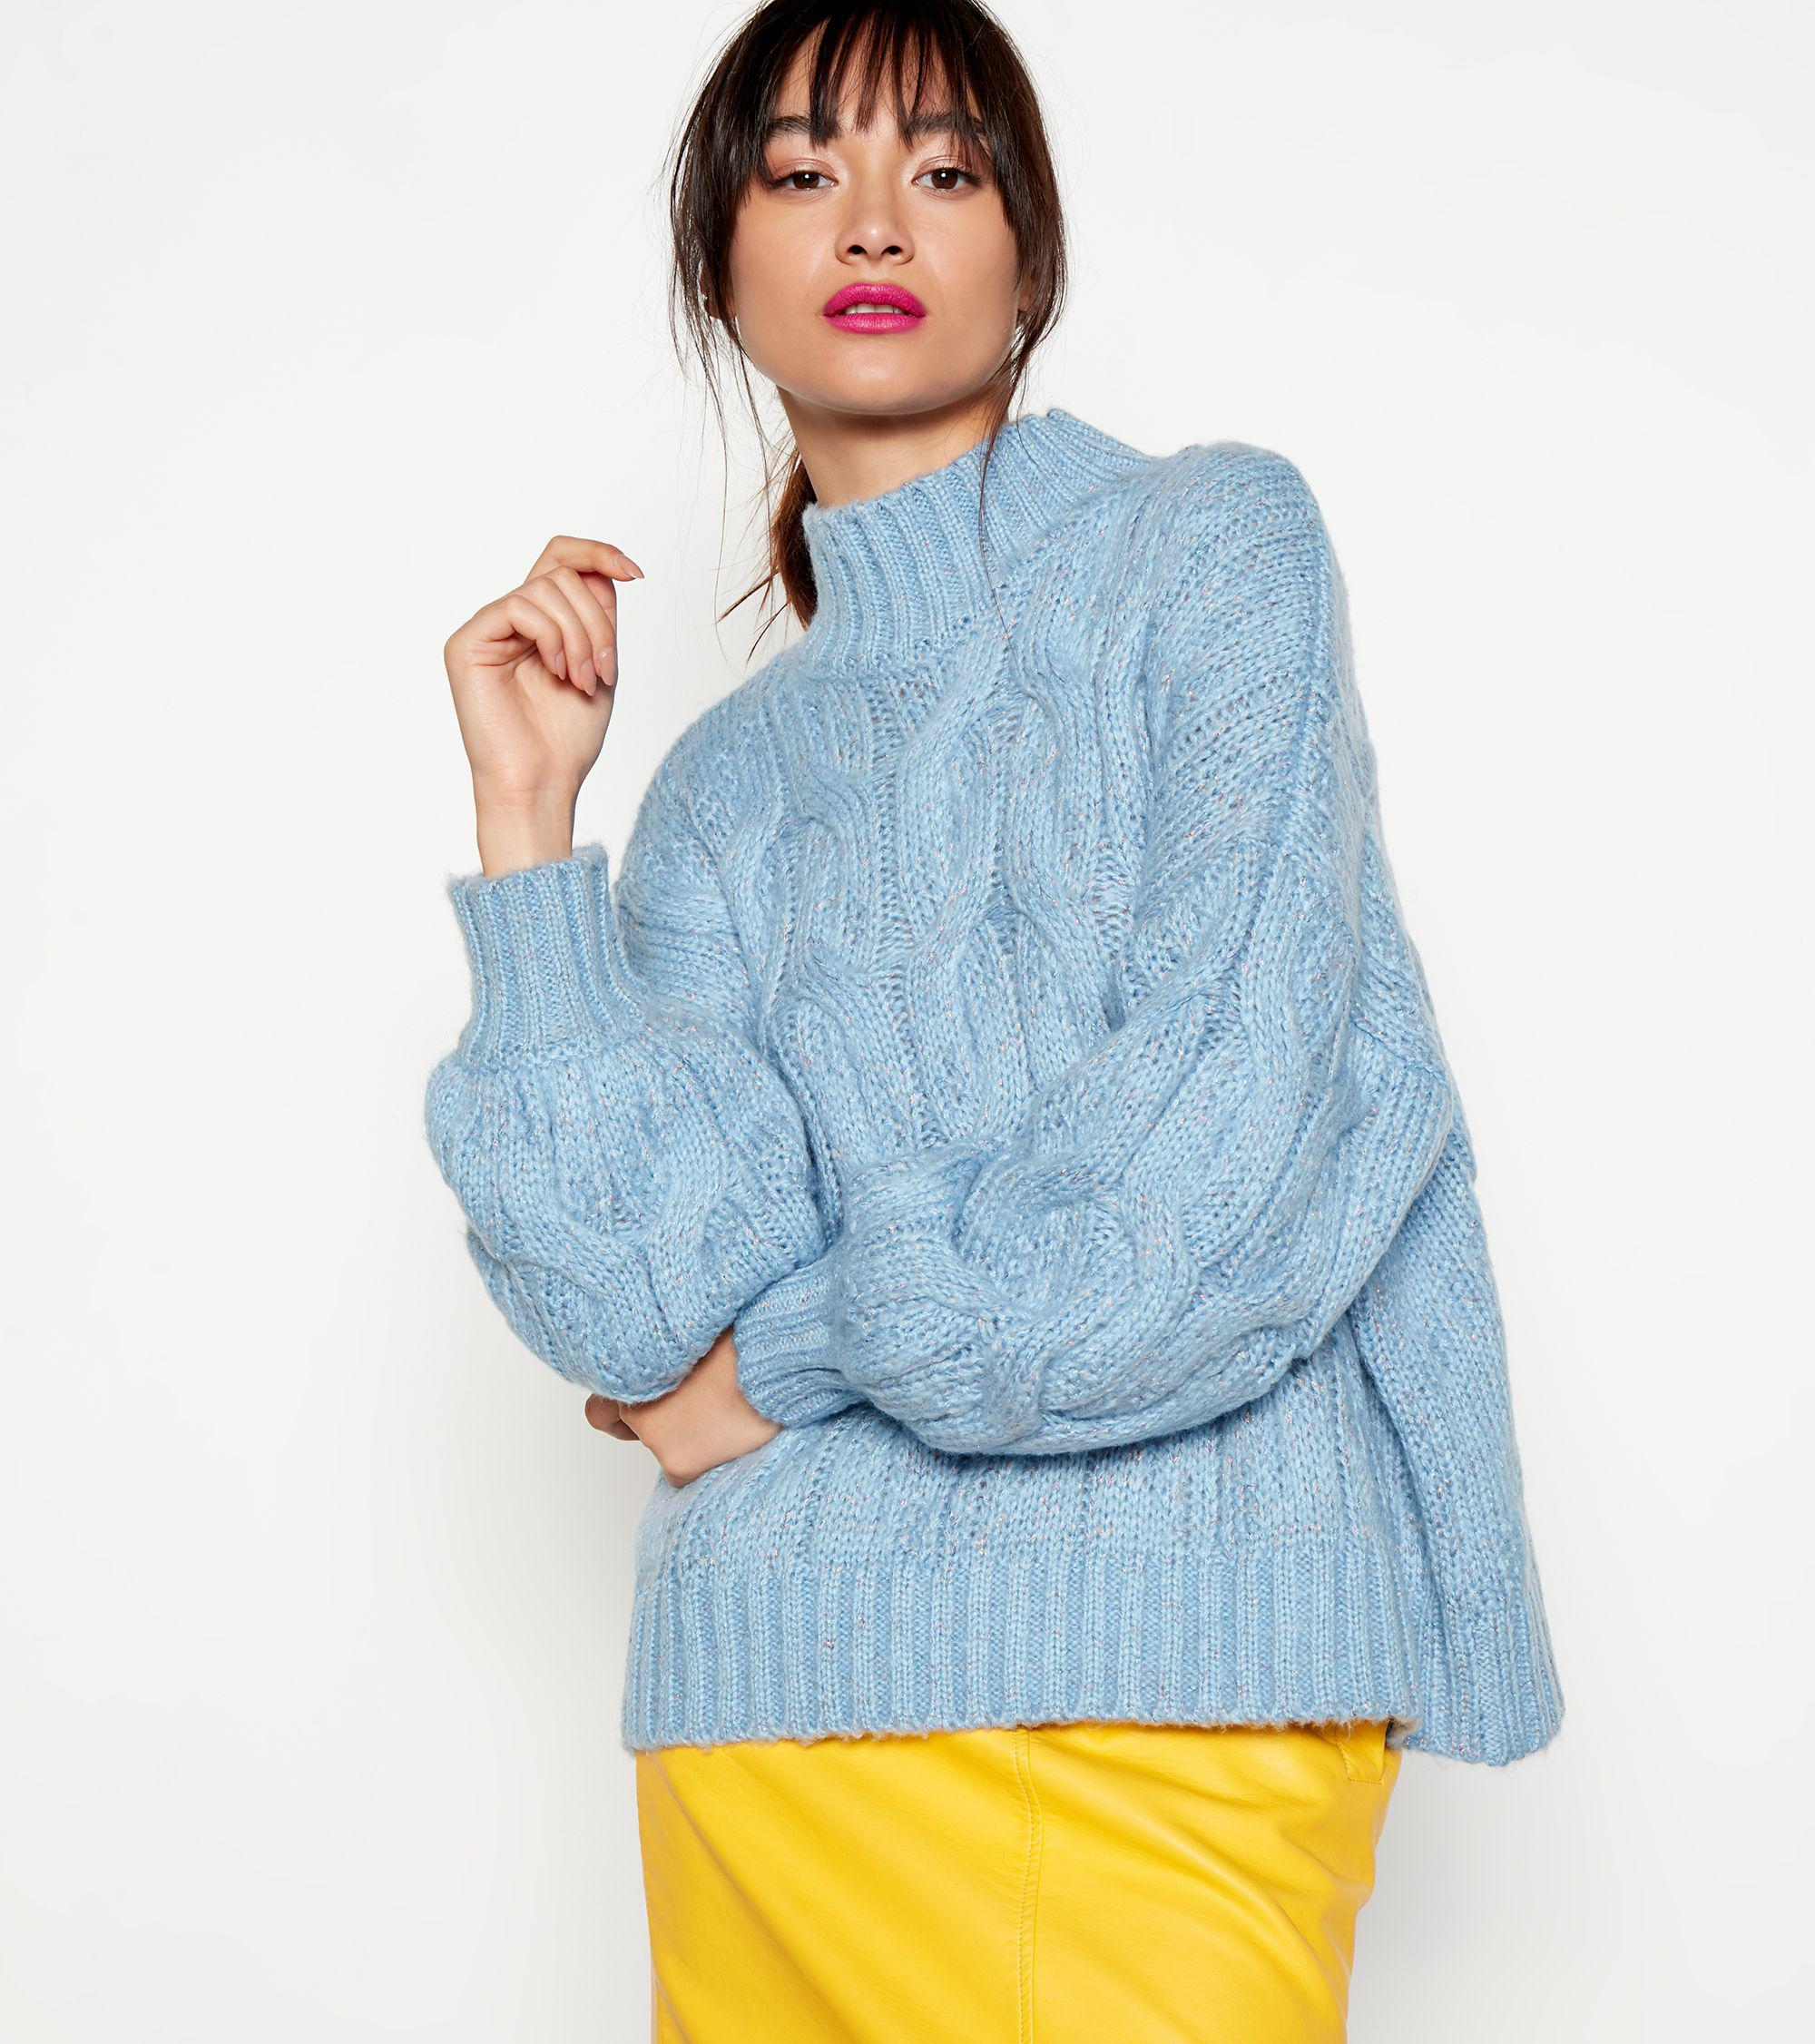 b2db9bf6ed6 House of Holland Light Blue Chunky Cable Knit Jumper